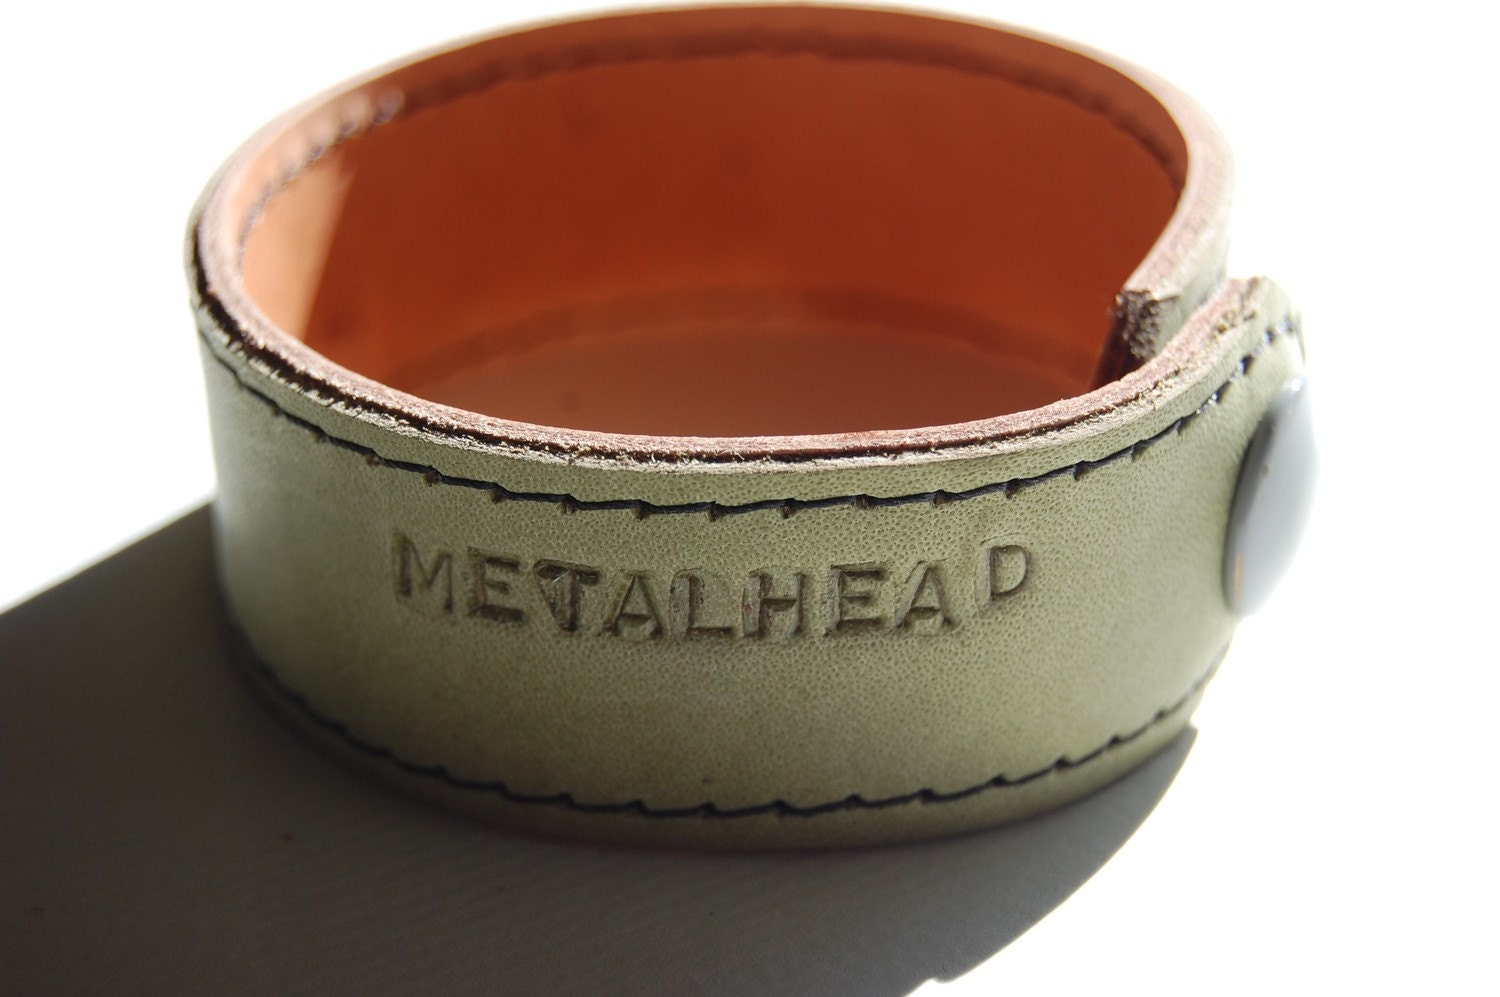 Leather Cuff Bracelet personalized message METALHEAD Ready to ship